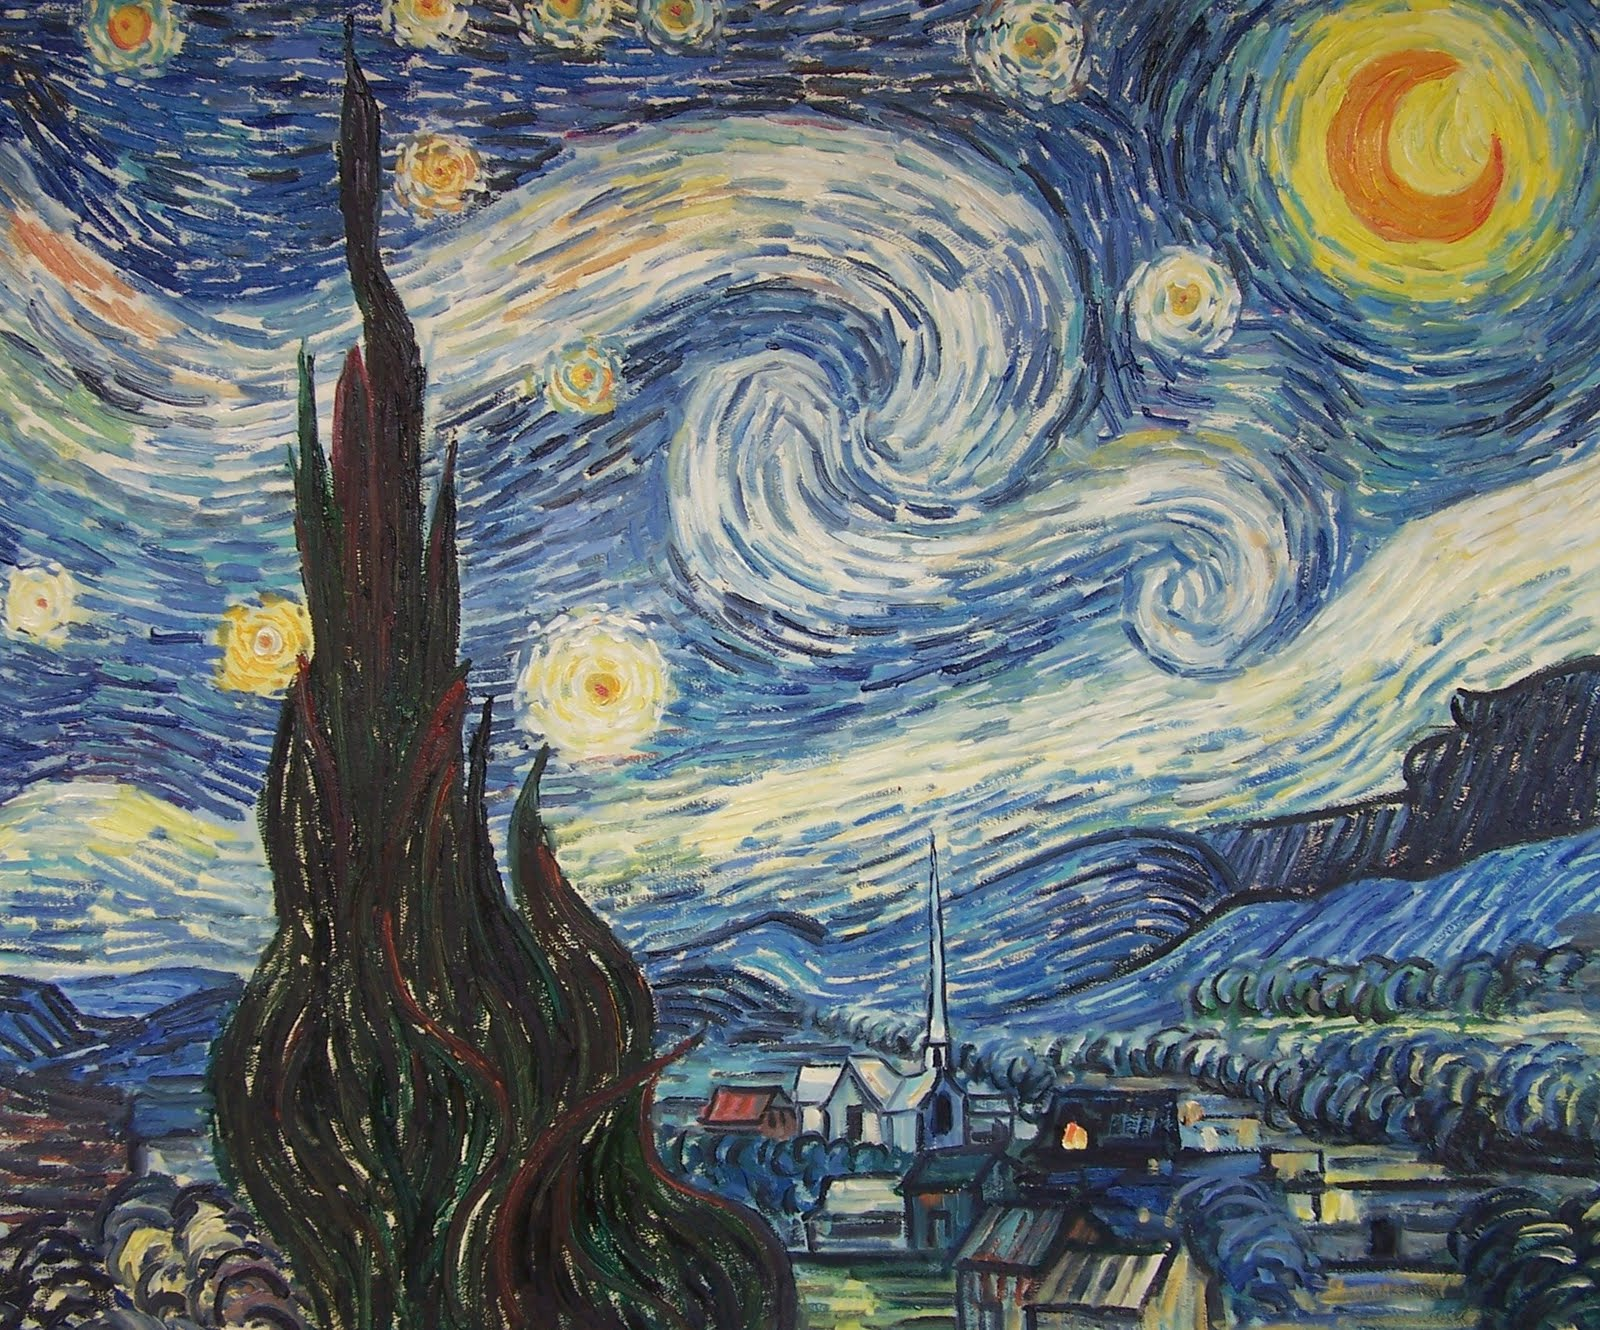 thesis for vincent van gogh paper Download thesis statement on vincent van gogh in our database or order an original thesis paper that will be written by one of our staff writers and.